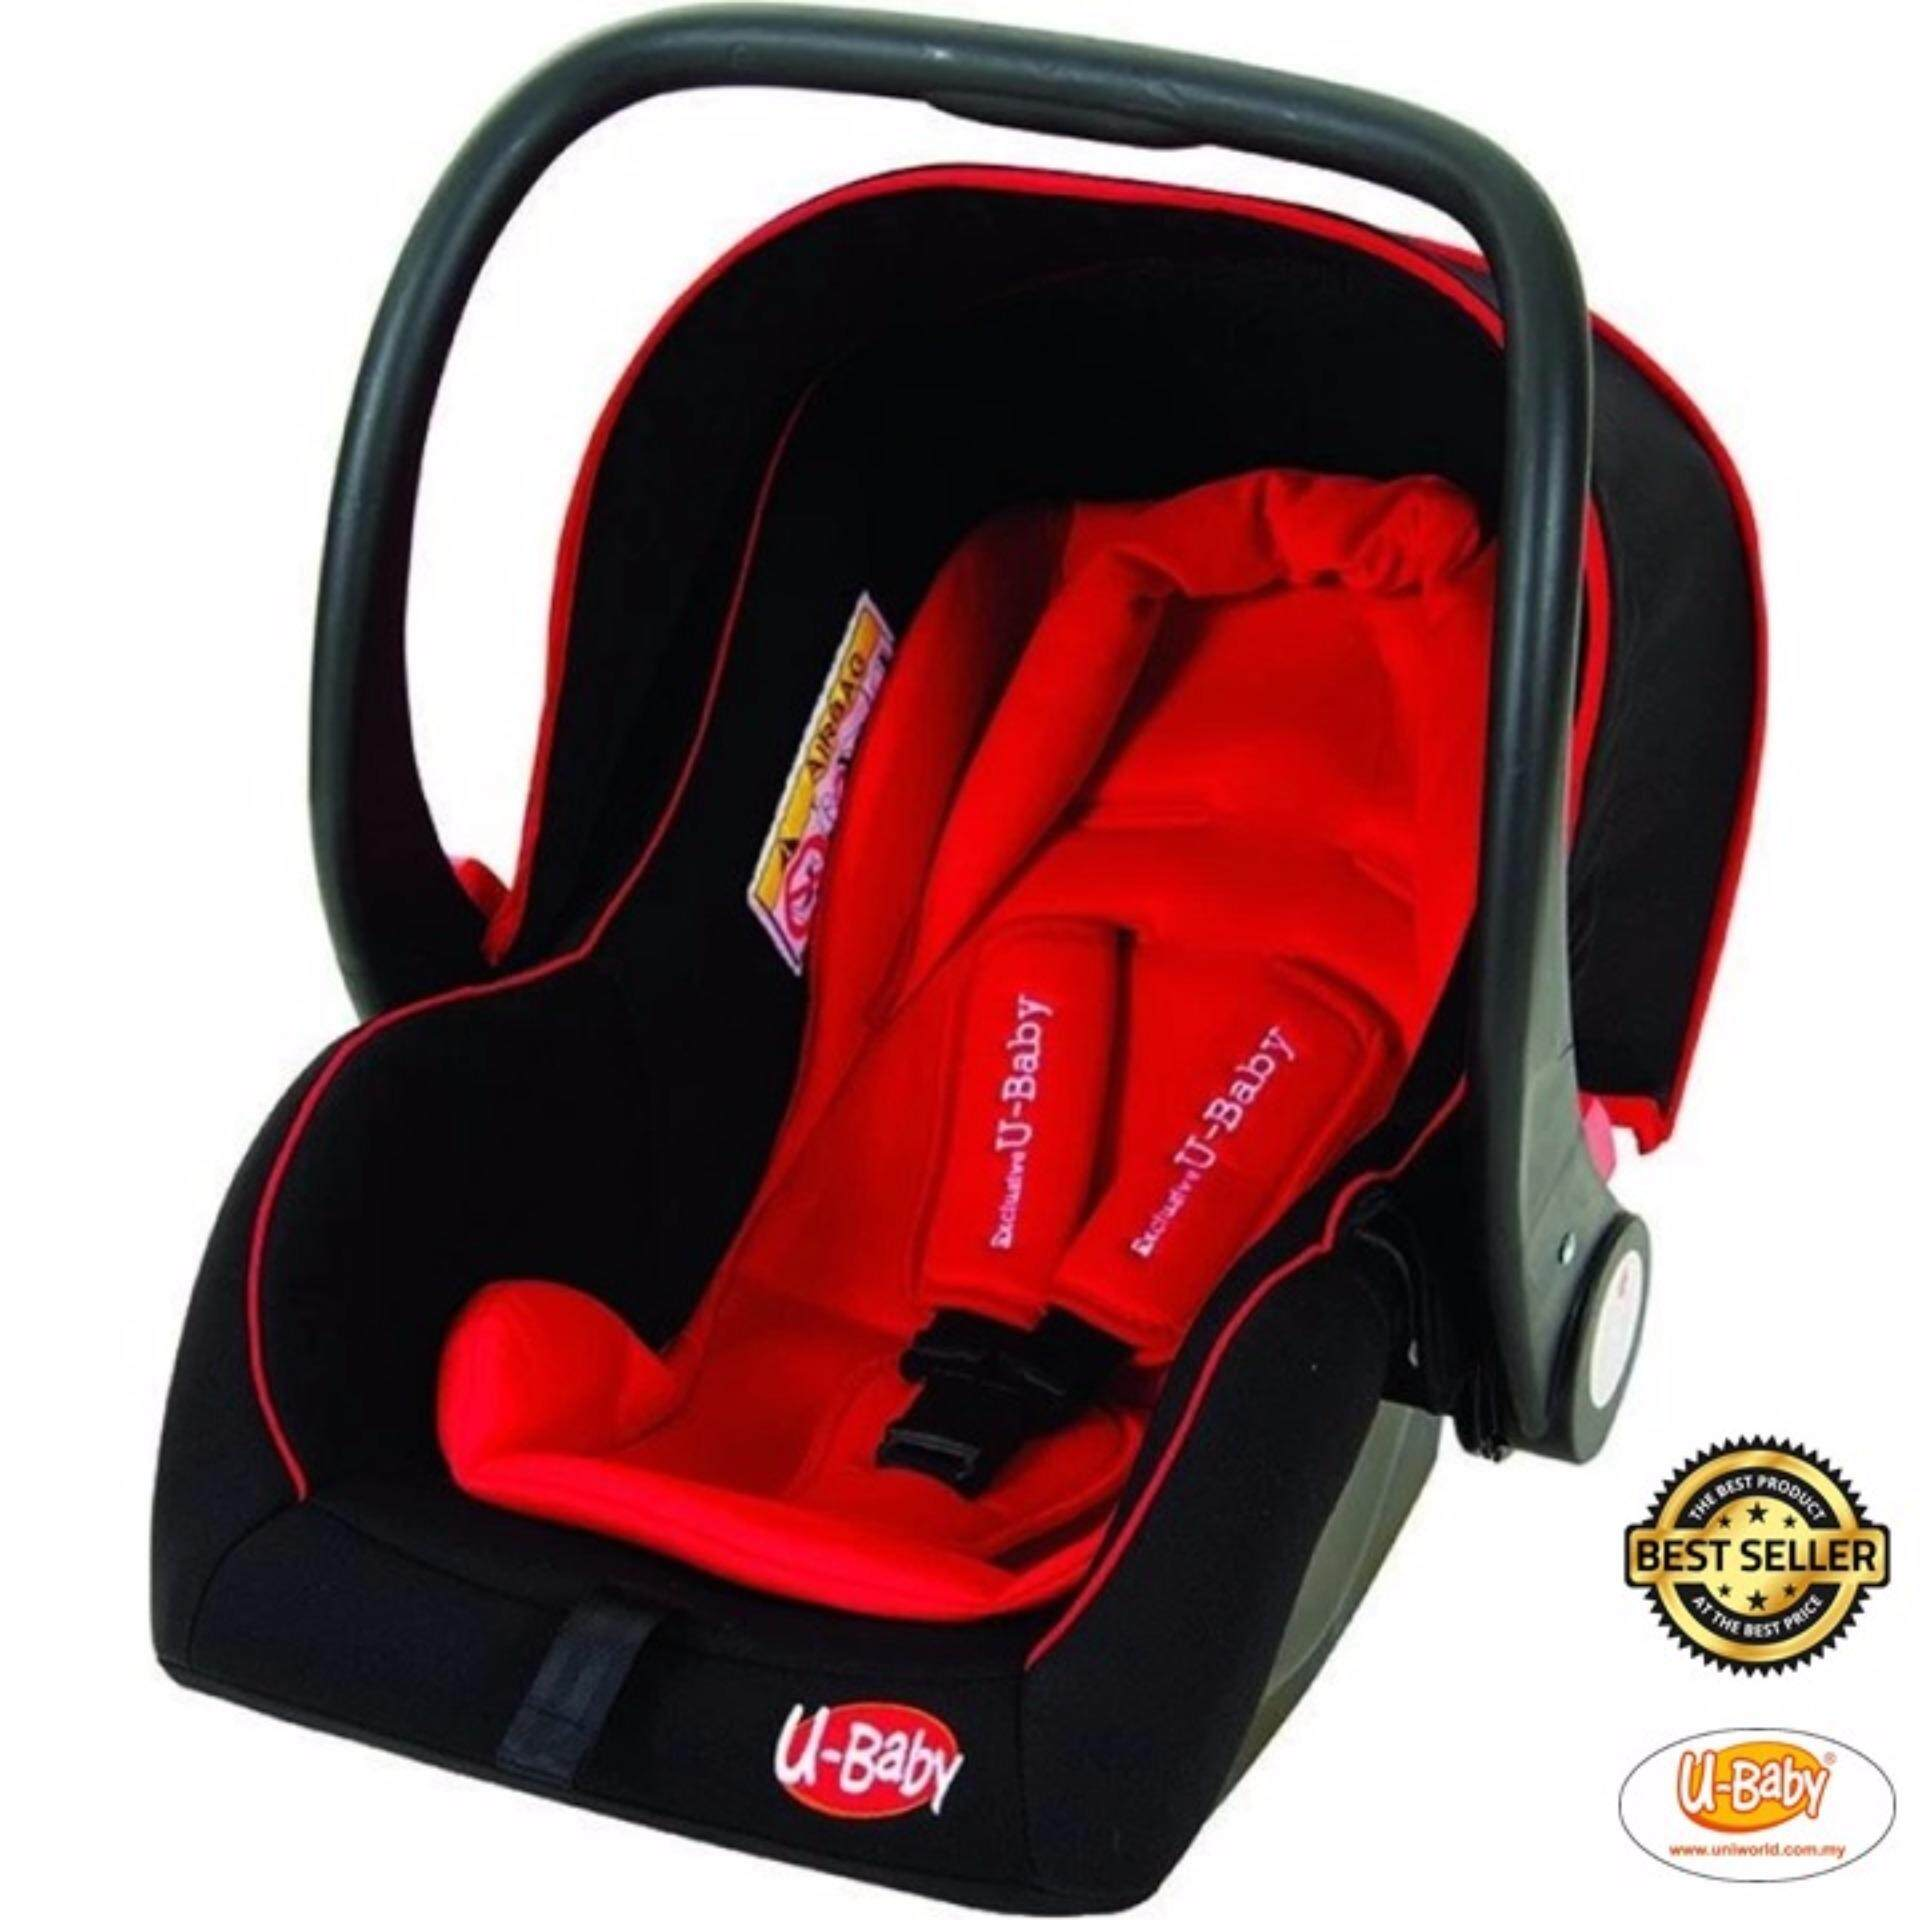 ubaby csa baby carrier car seat (red)  lazada malaysia -